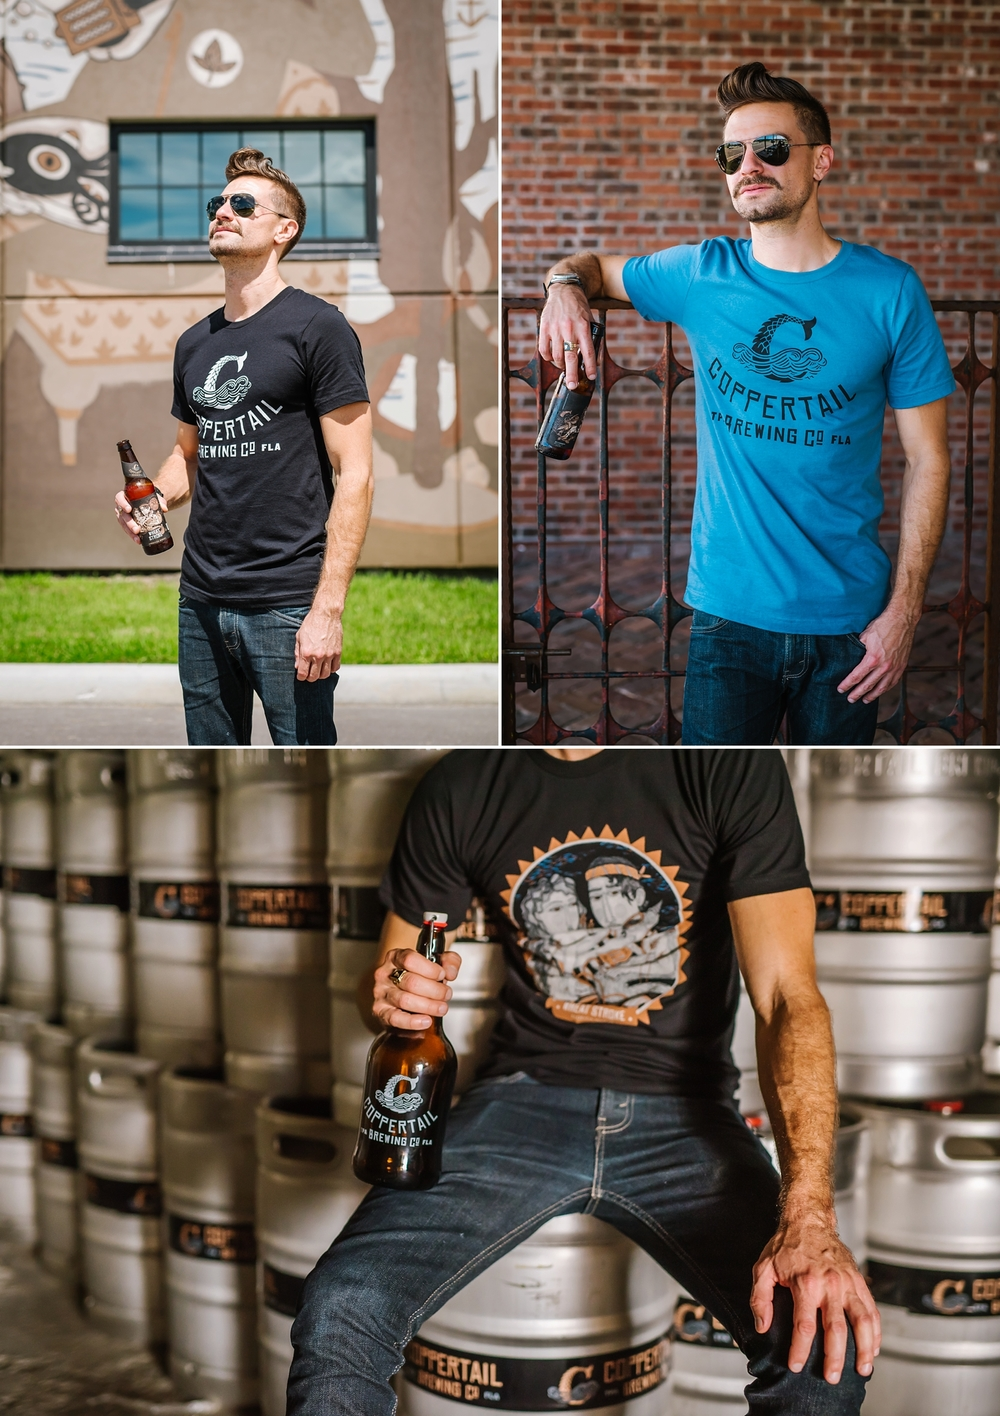 tampa-commercial-photographer-coppertail-brewing-ashlee-hamon_0003.jpg